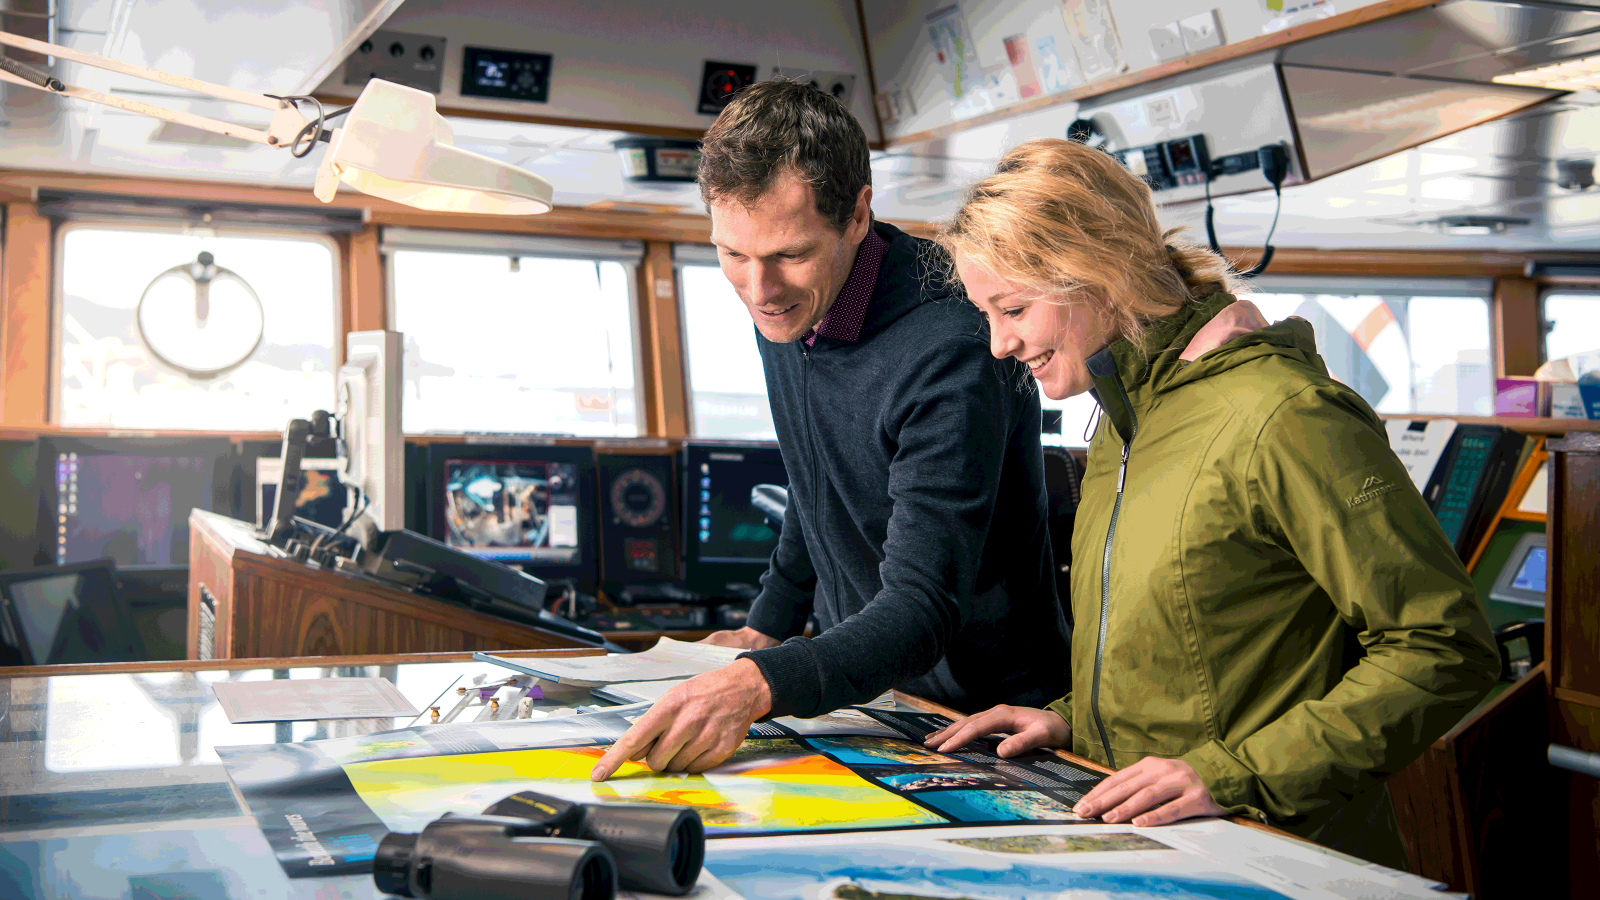 Two researchers look at a chart while standing in the control room of a ship.